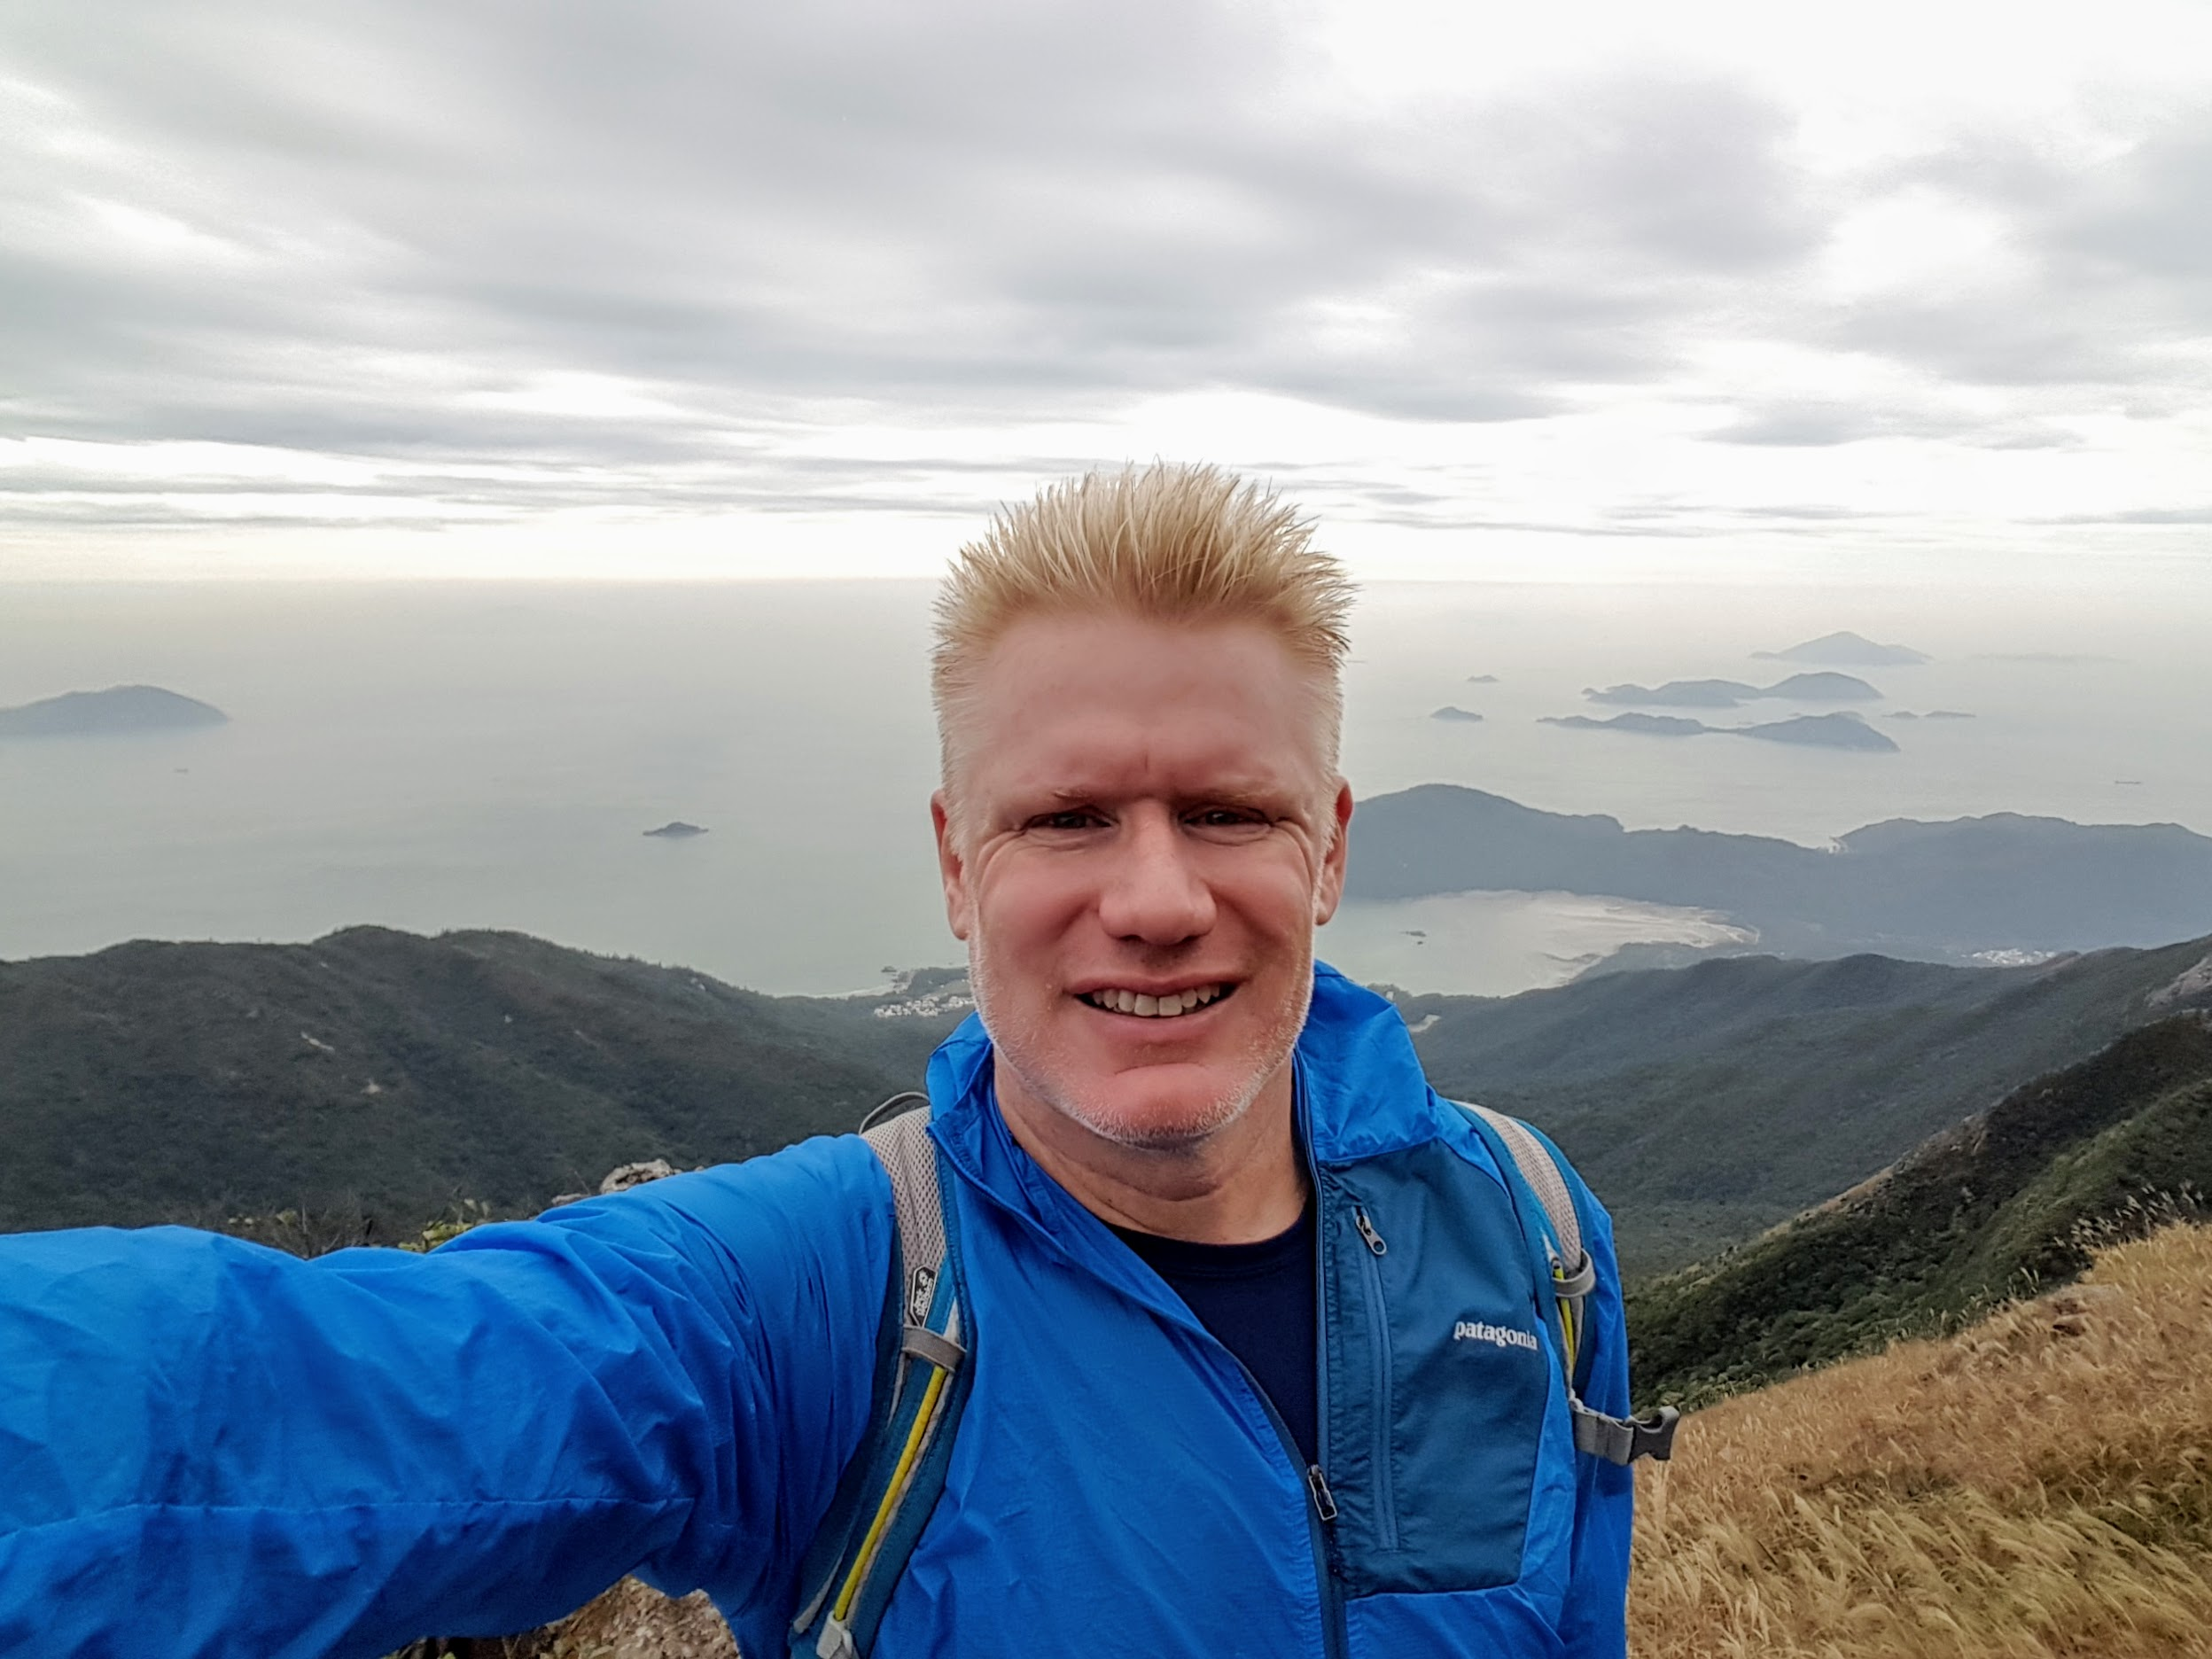 Christian at Lantau Peak near Hong Kong